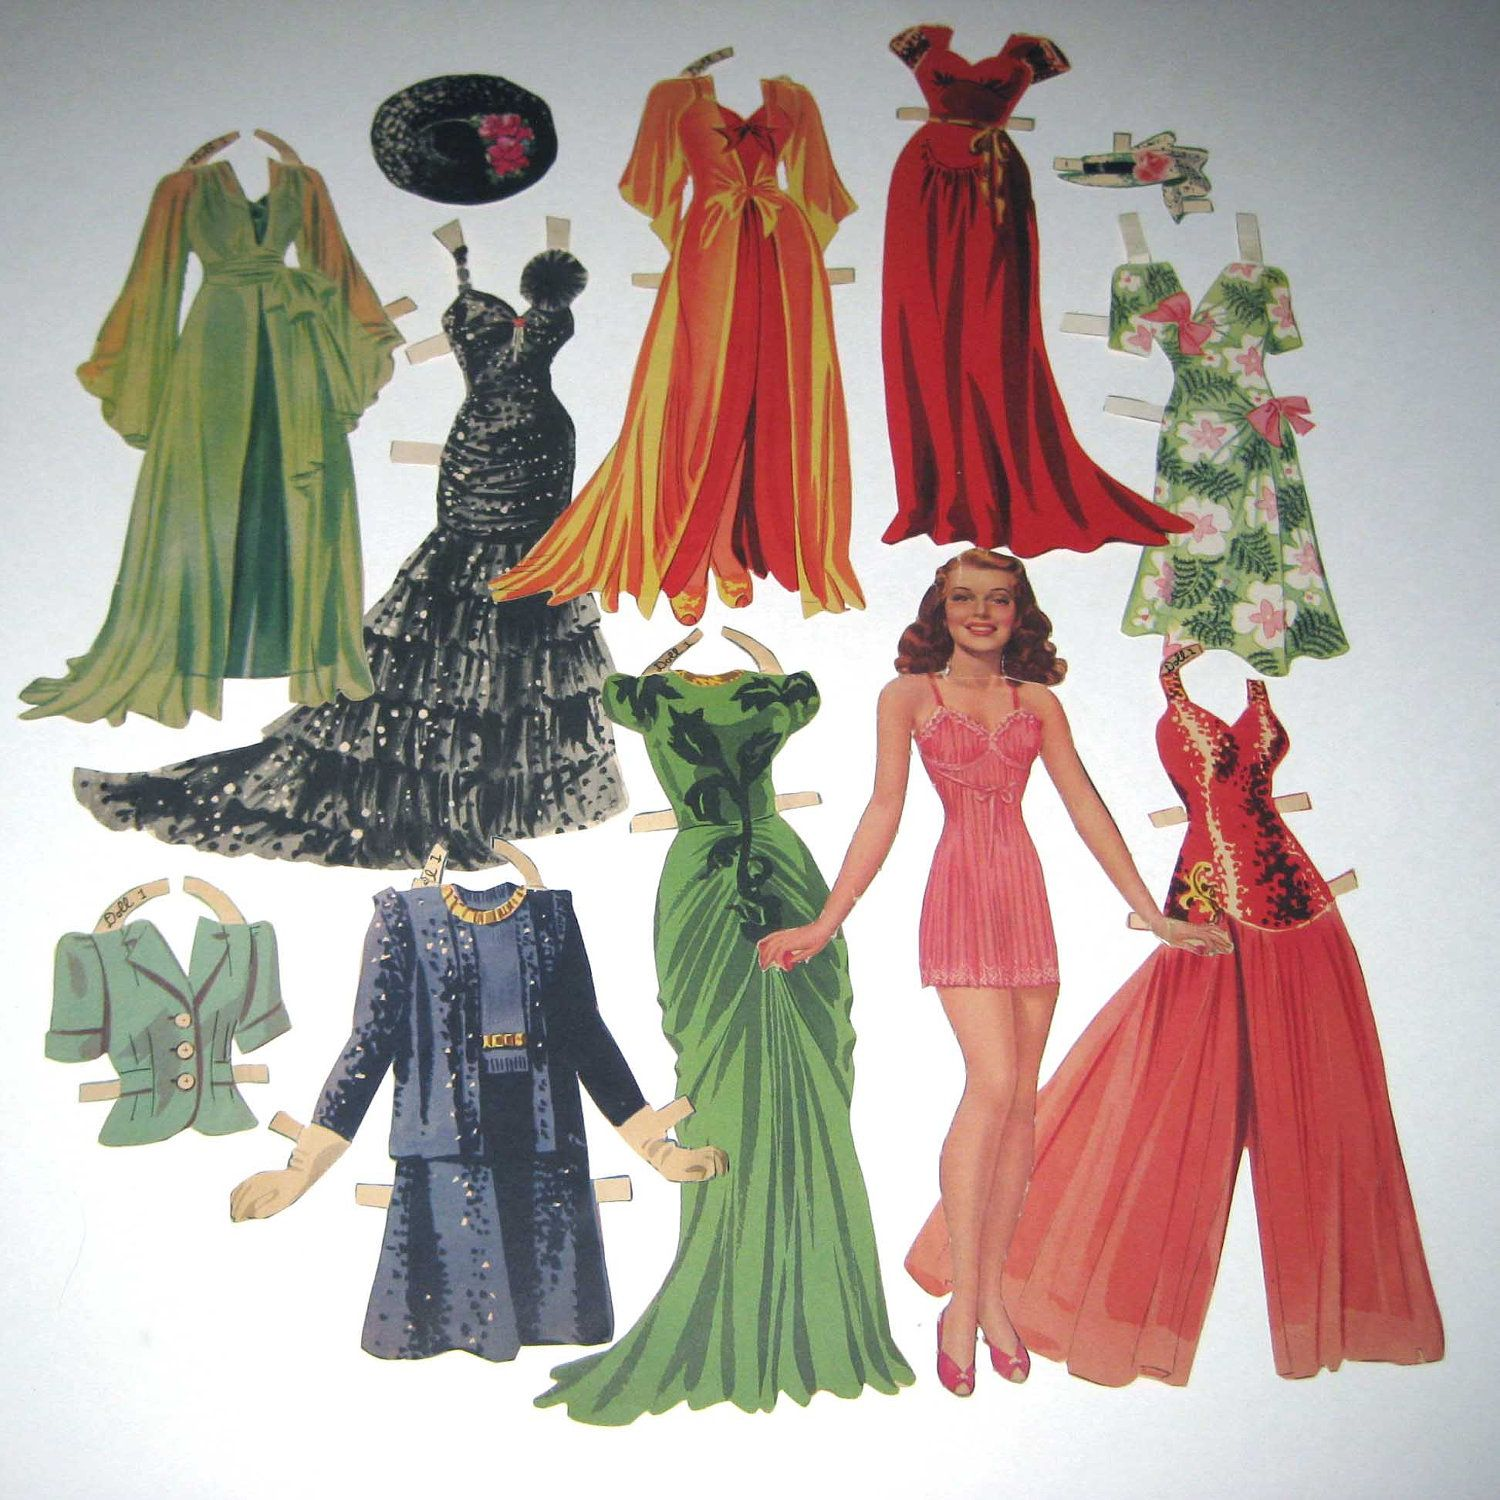 Reserved For Ani Vintage 1940s Rita Hayworth Movie Star Paper Dolls With Outfits Paper Dolls Vintage Paper Dolls Rita Hayworth